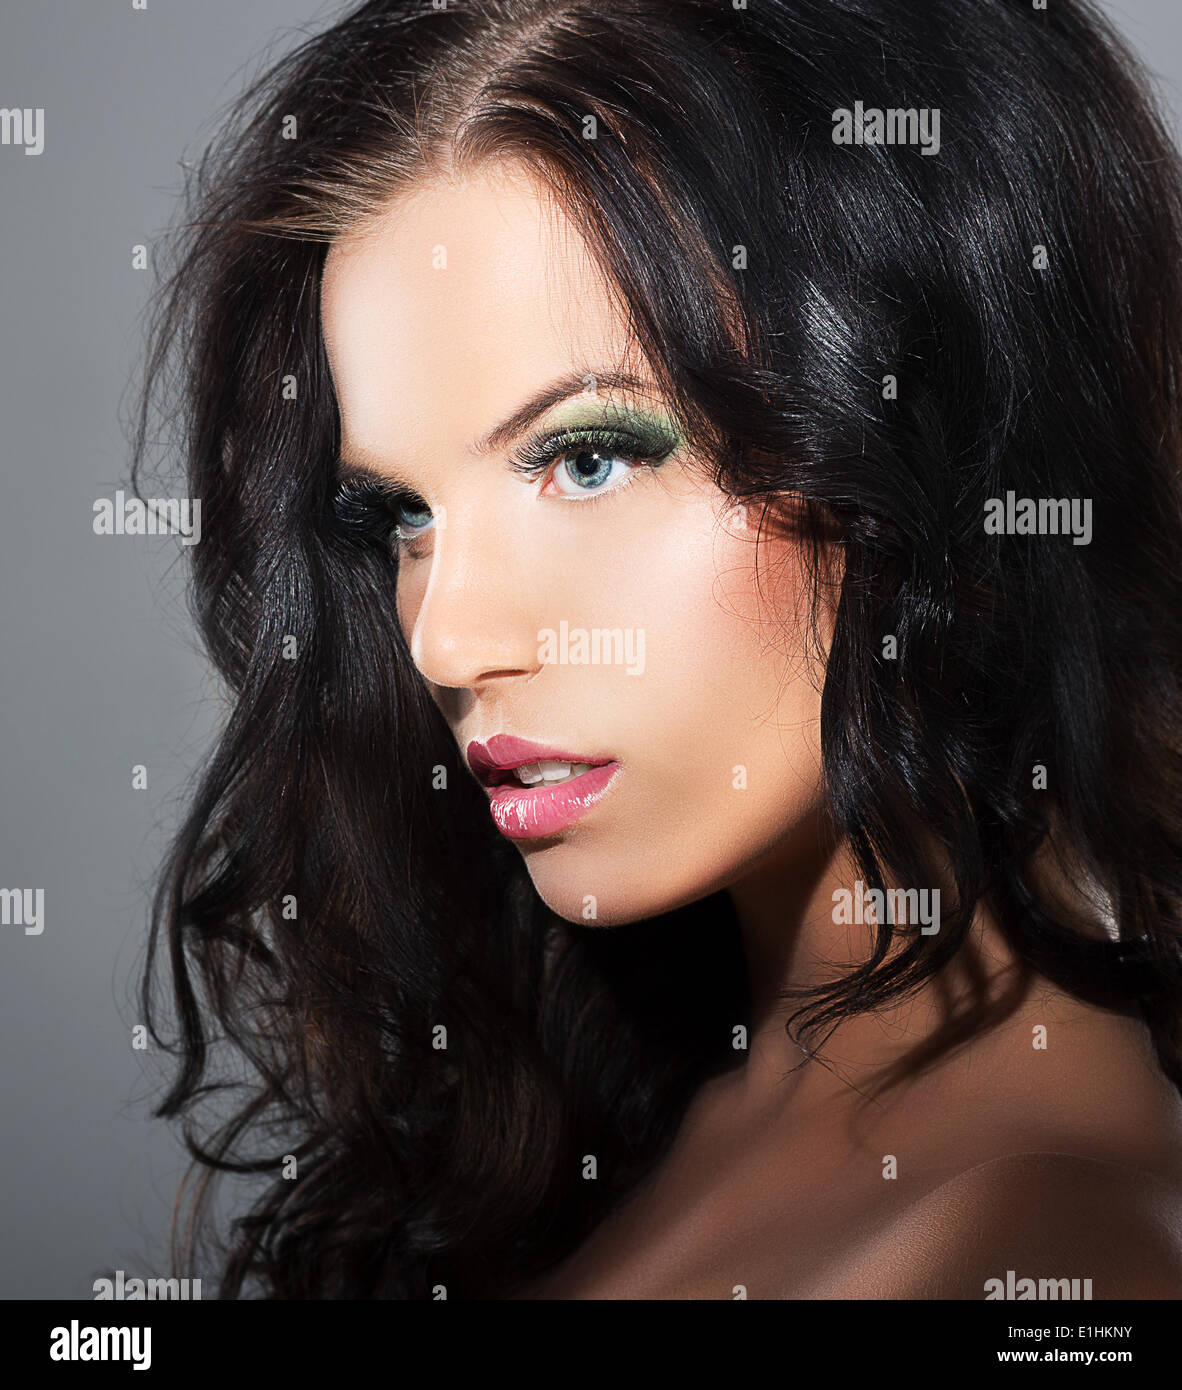 Fascination. Sophistication. Profile of Luxurious Lovely Brunette - Stock Image